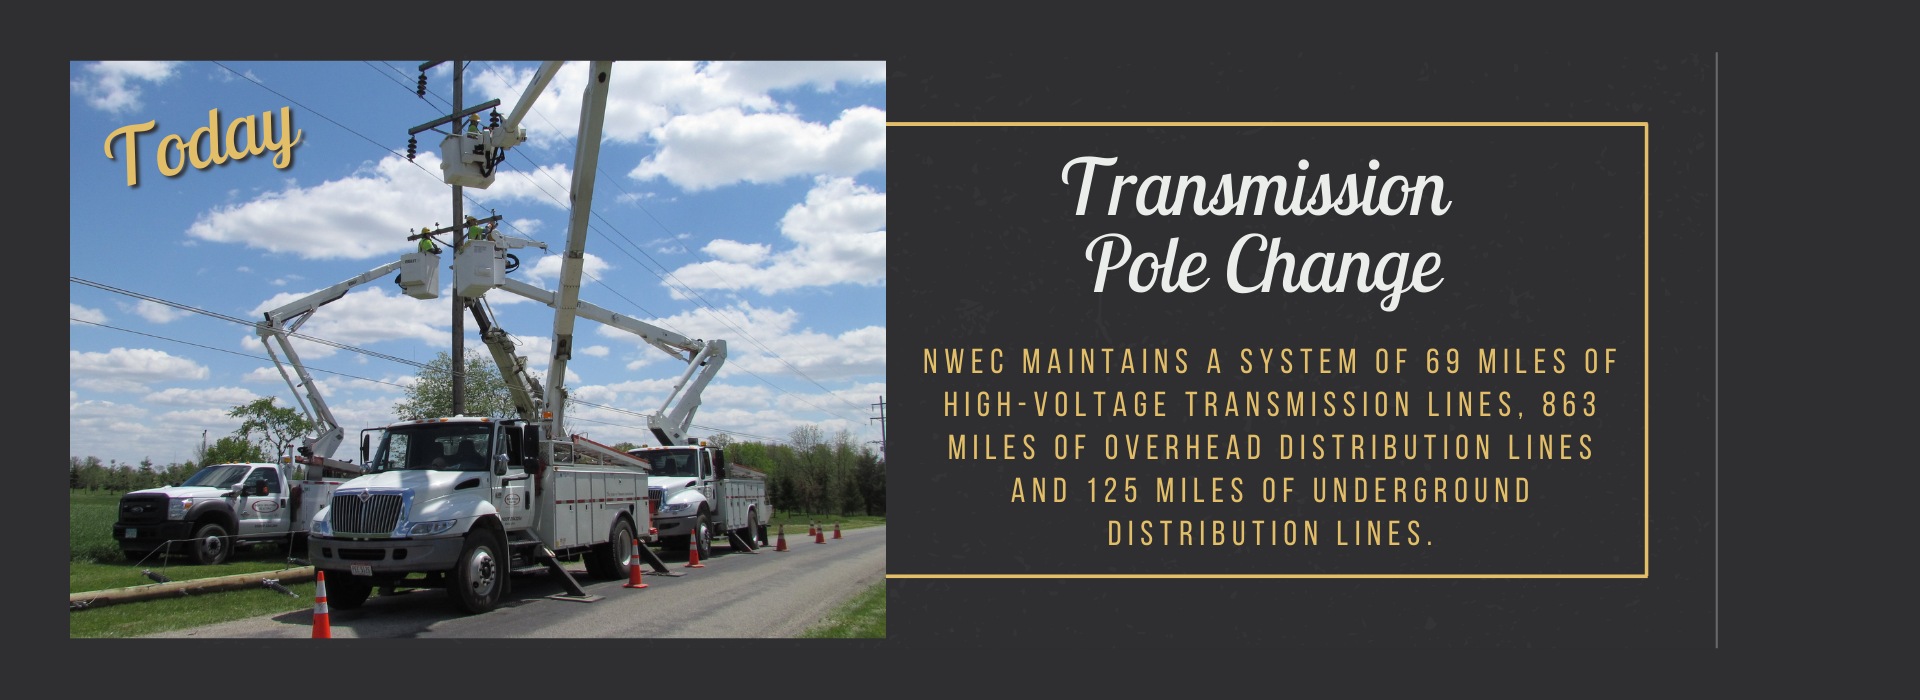 NWEC MAINTAINS A system of 69 miles of high-voltage transmission lines, 863 miles of overhead distribution lines and 125 miles of underground distribution lines.